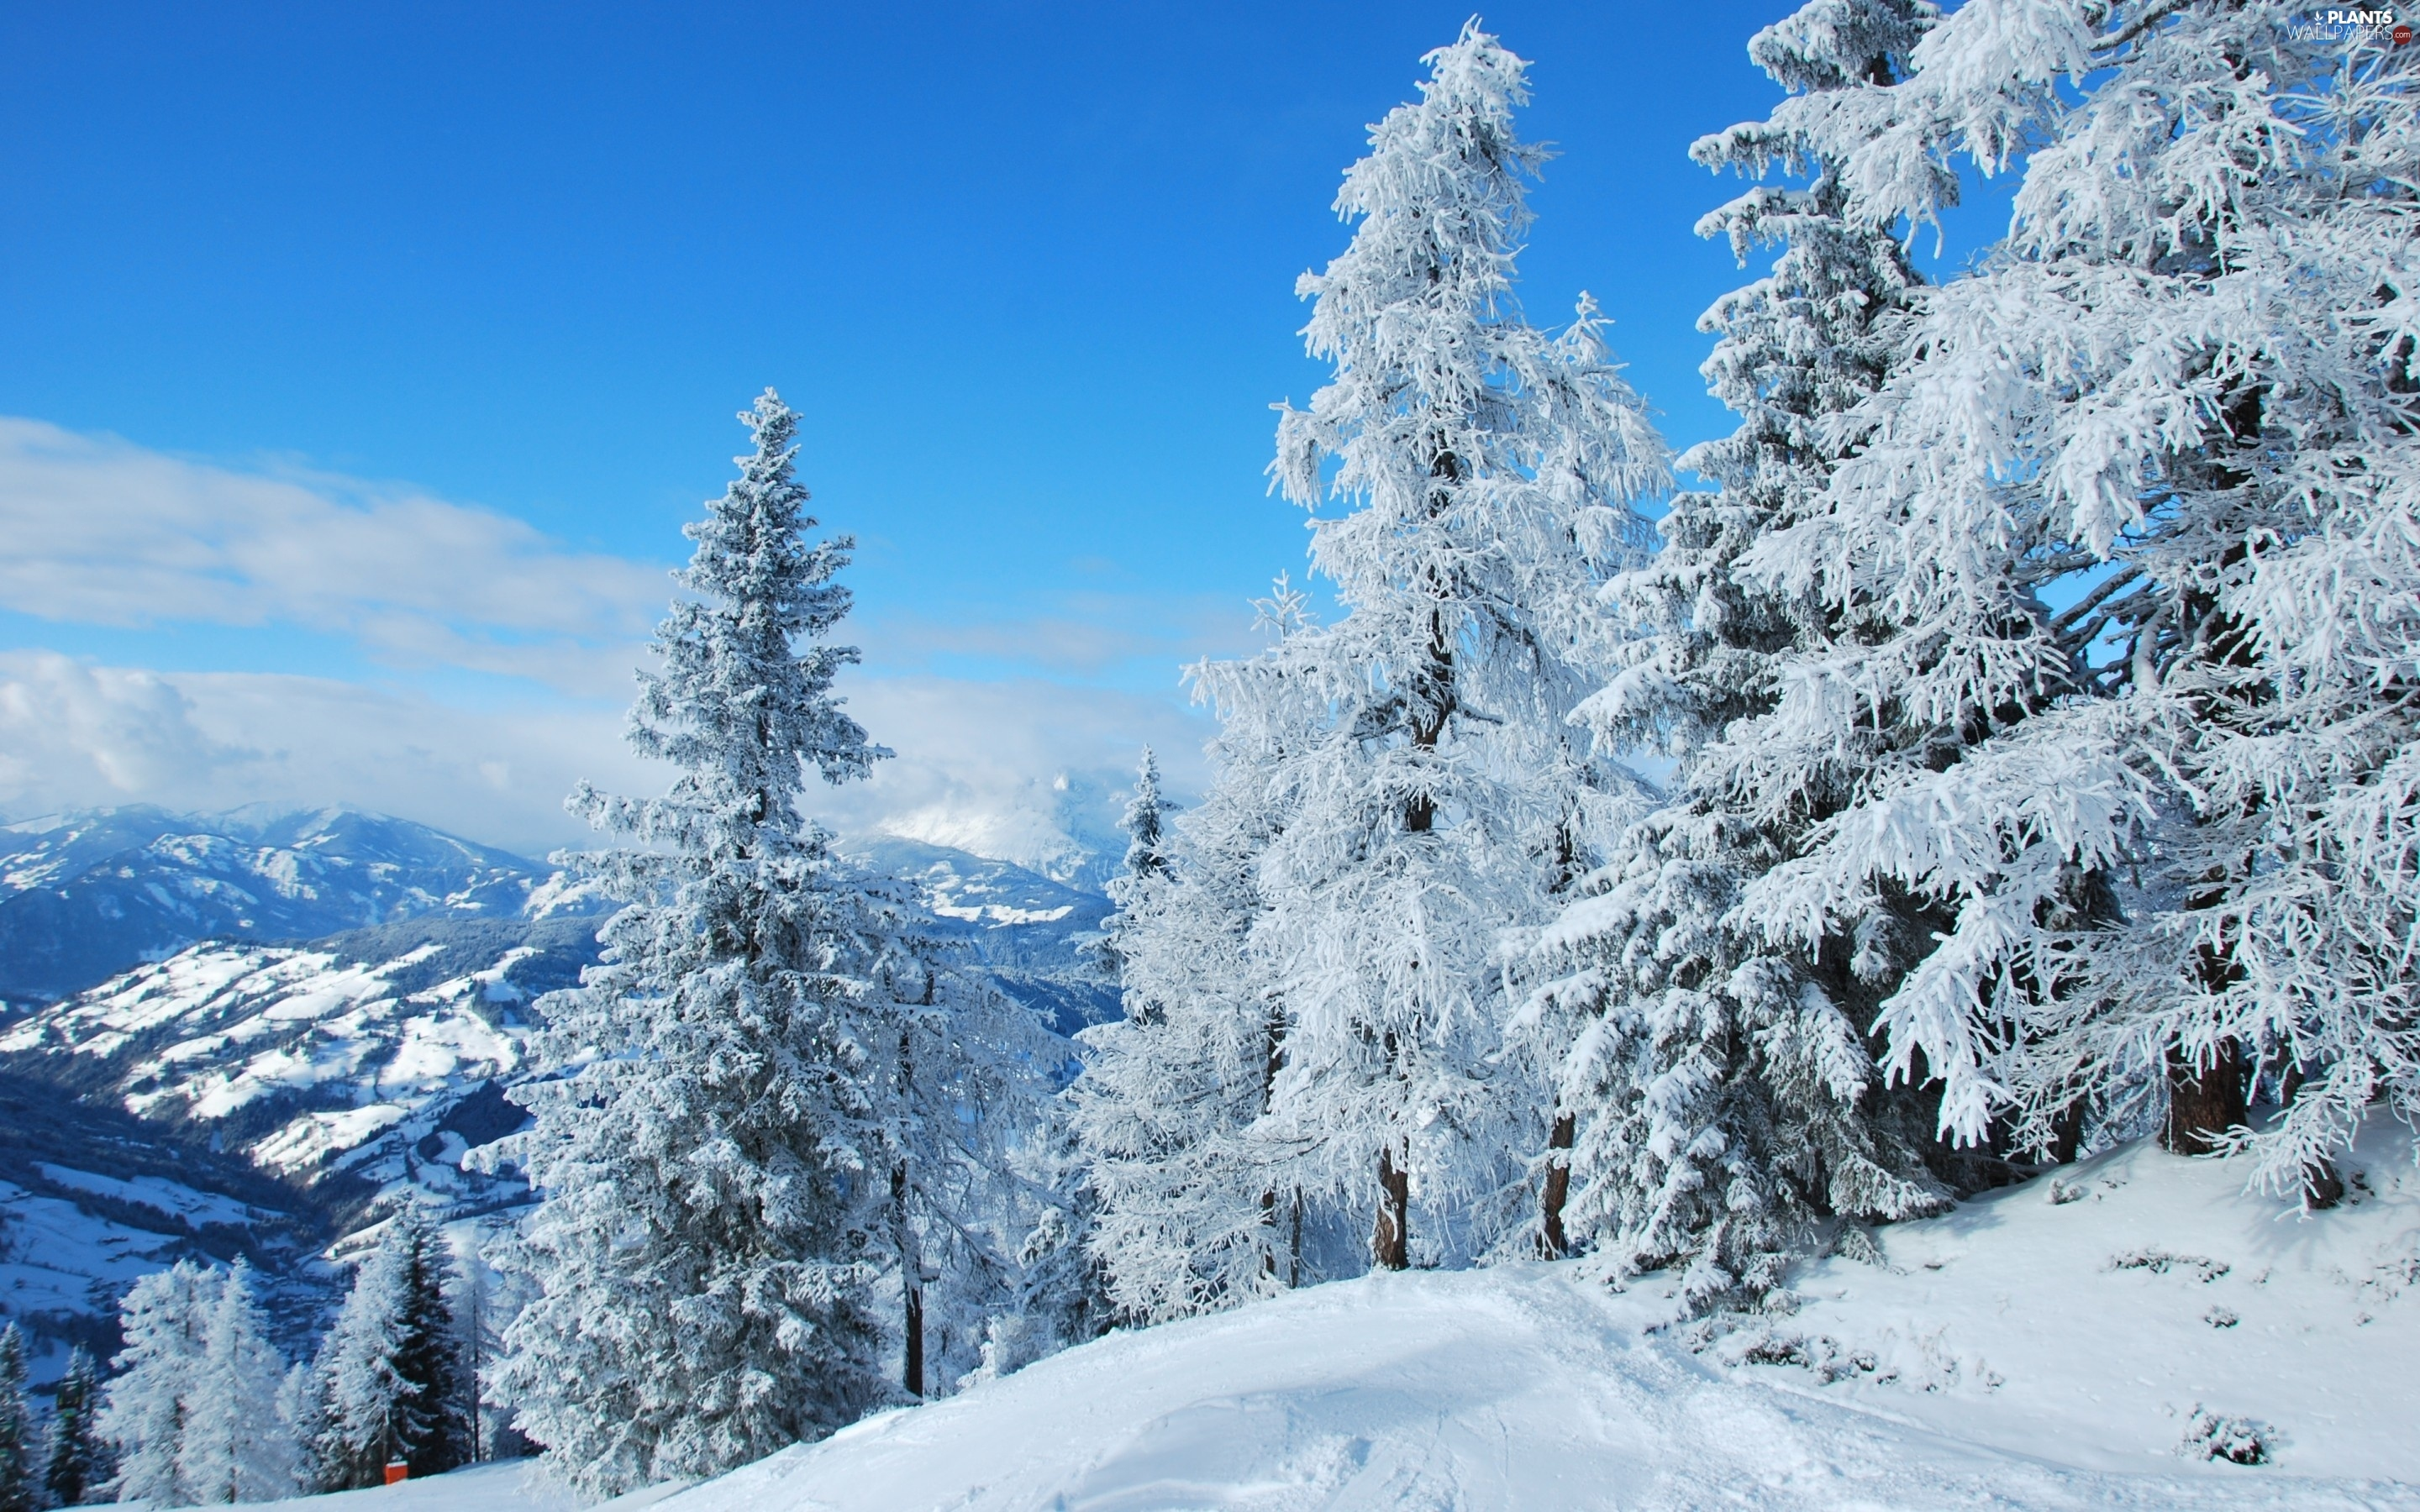 trees, Mountains, winter, viewes